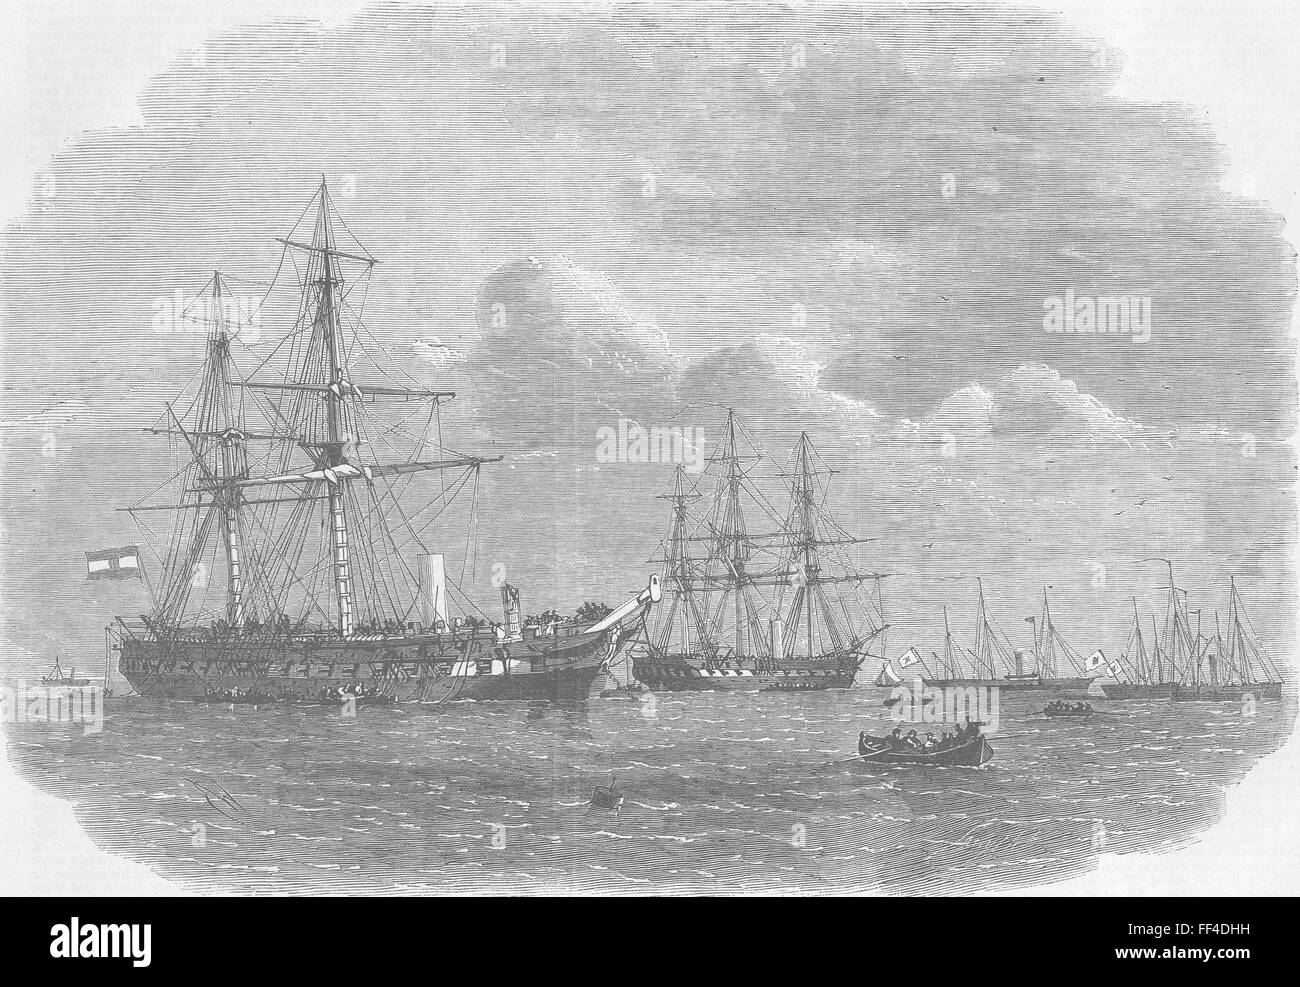 CUXHAVEN Austro-Prussian fleet, Heligoland defeat 1864. Illustrated London News - Stock Image